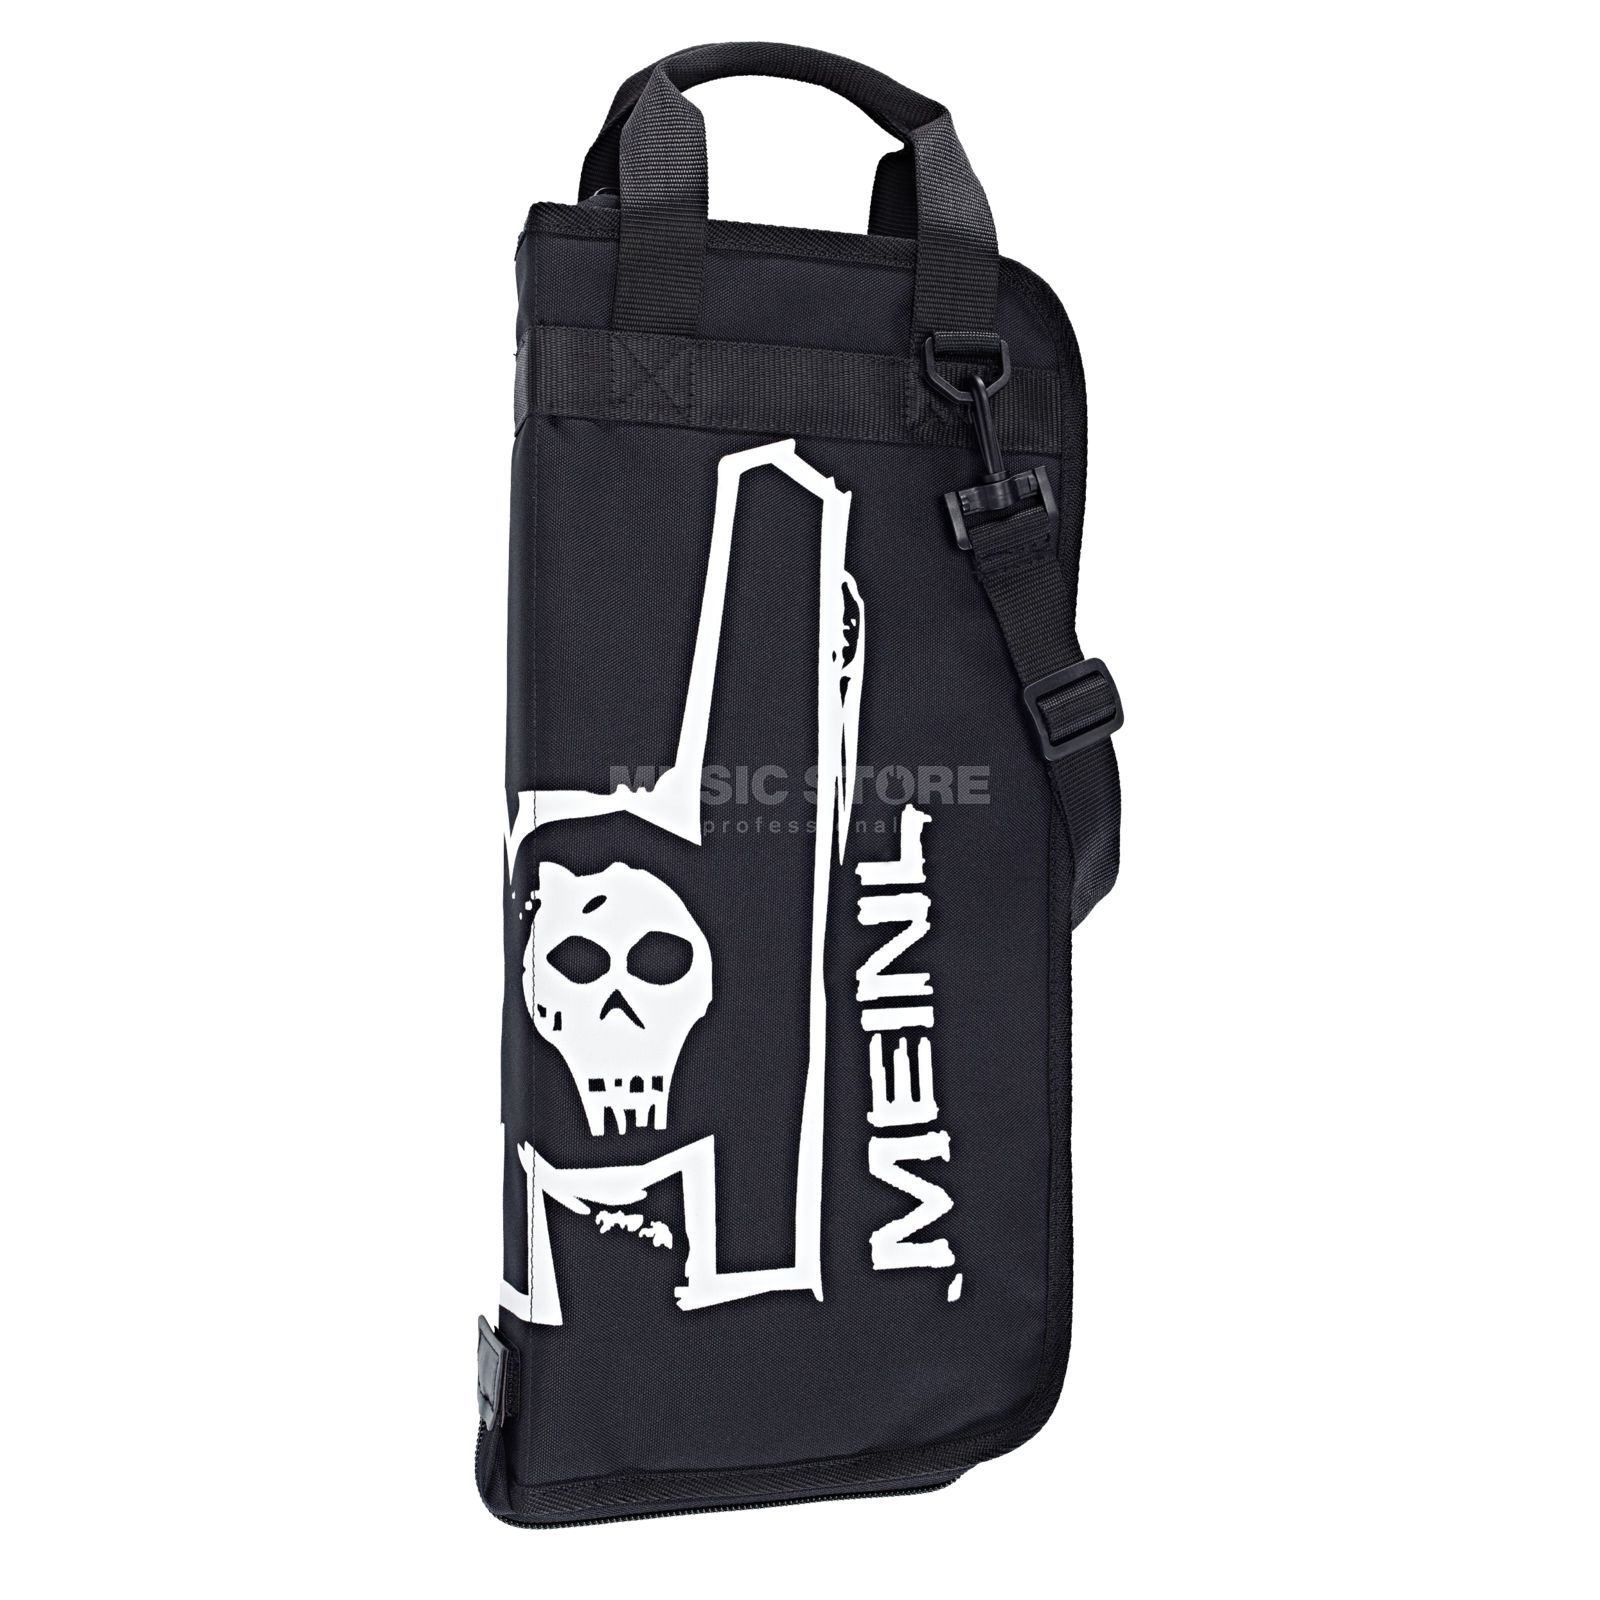 Meinl Professional Stick Bag MSB-2, The Horns Product Image